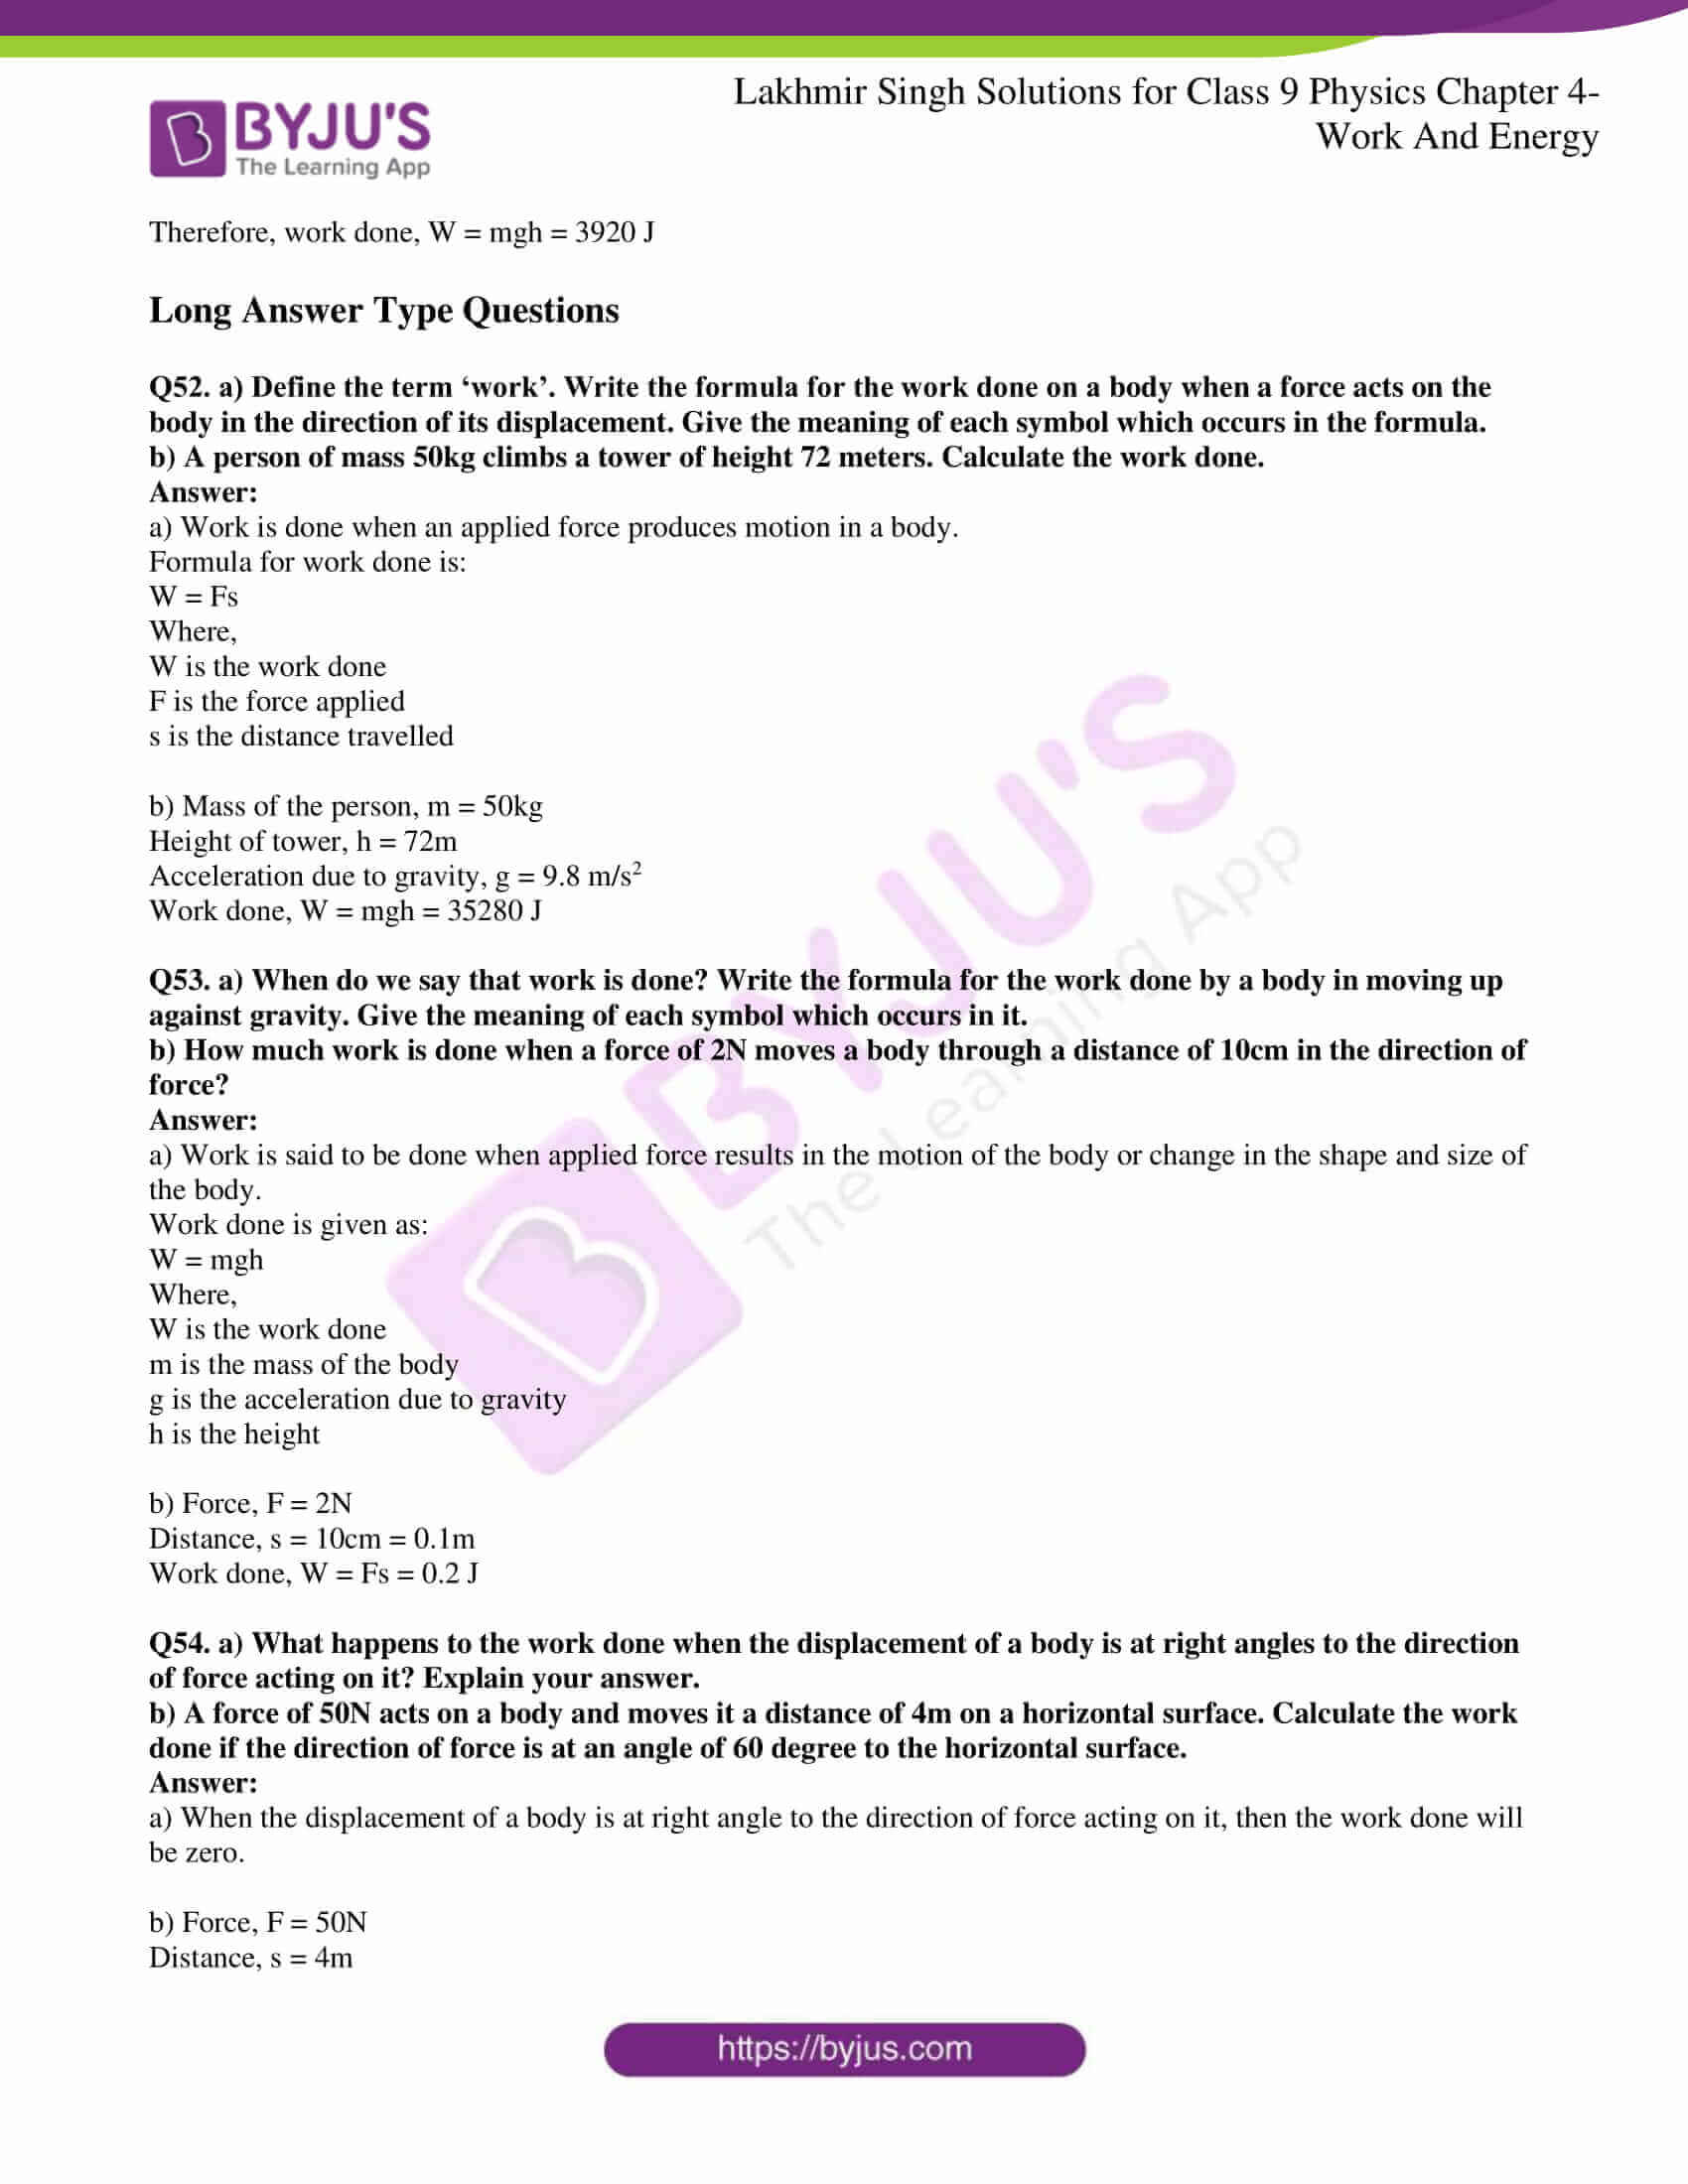 lakhmir singh solutions class 9 physics chapter 4 10